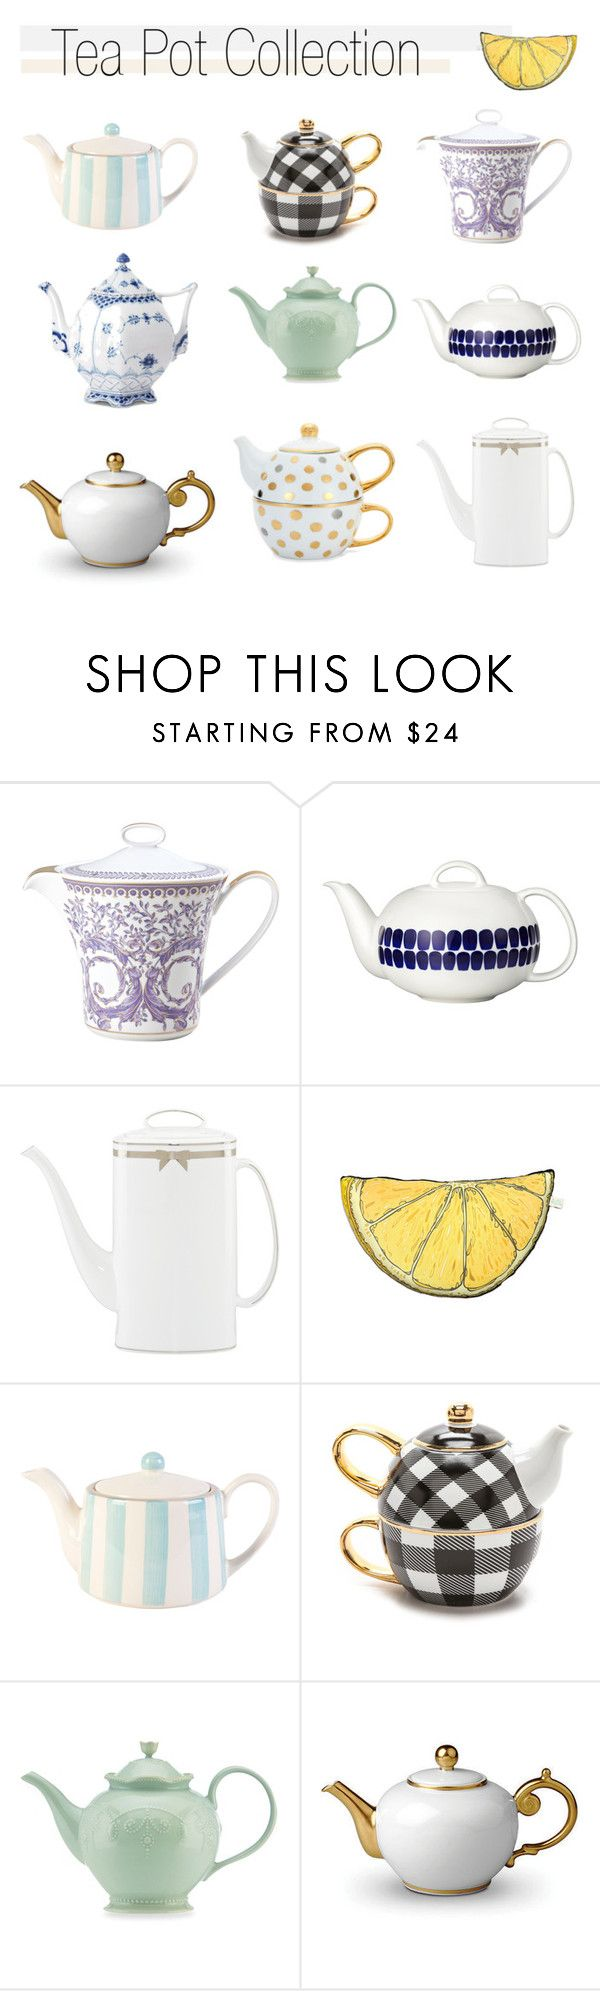 """Tea Time"" by southernpearldesigns ❤ liked on Polyvore featuring interior, interiors, interior design, thuis, home decor, interior decorating, Versace, Arabia, Kate Spade en Silken Favours"